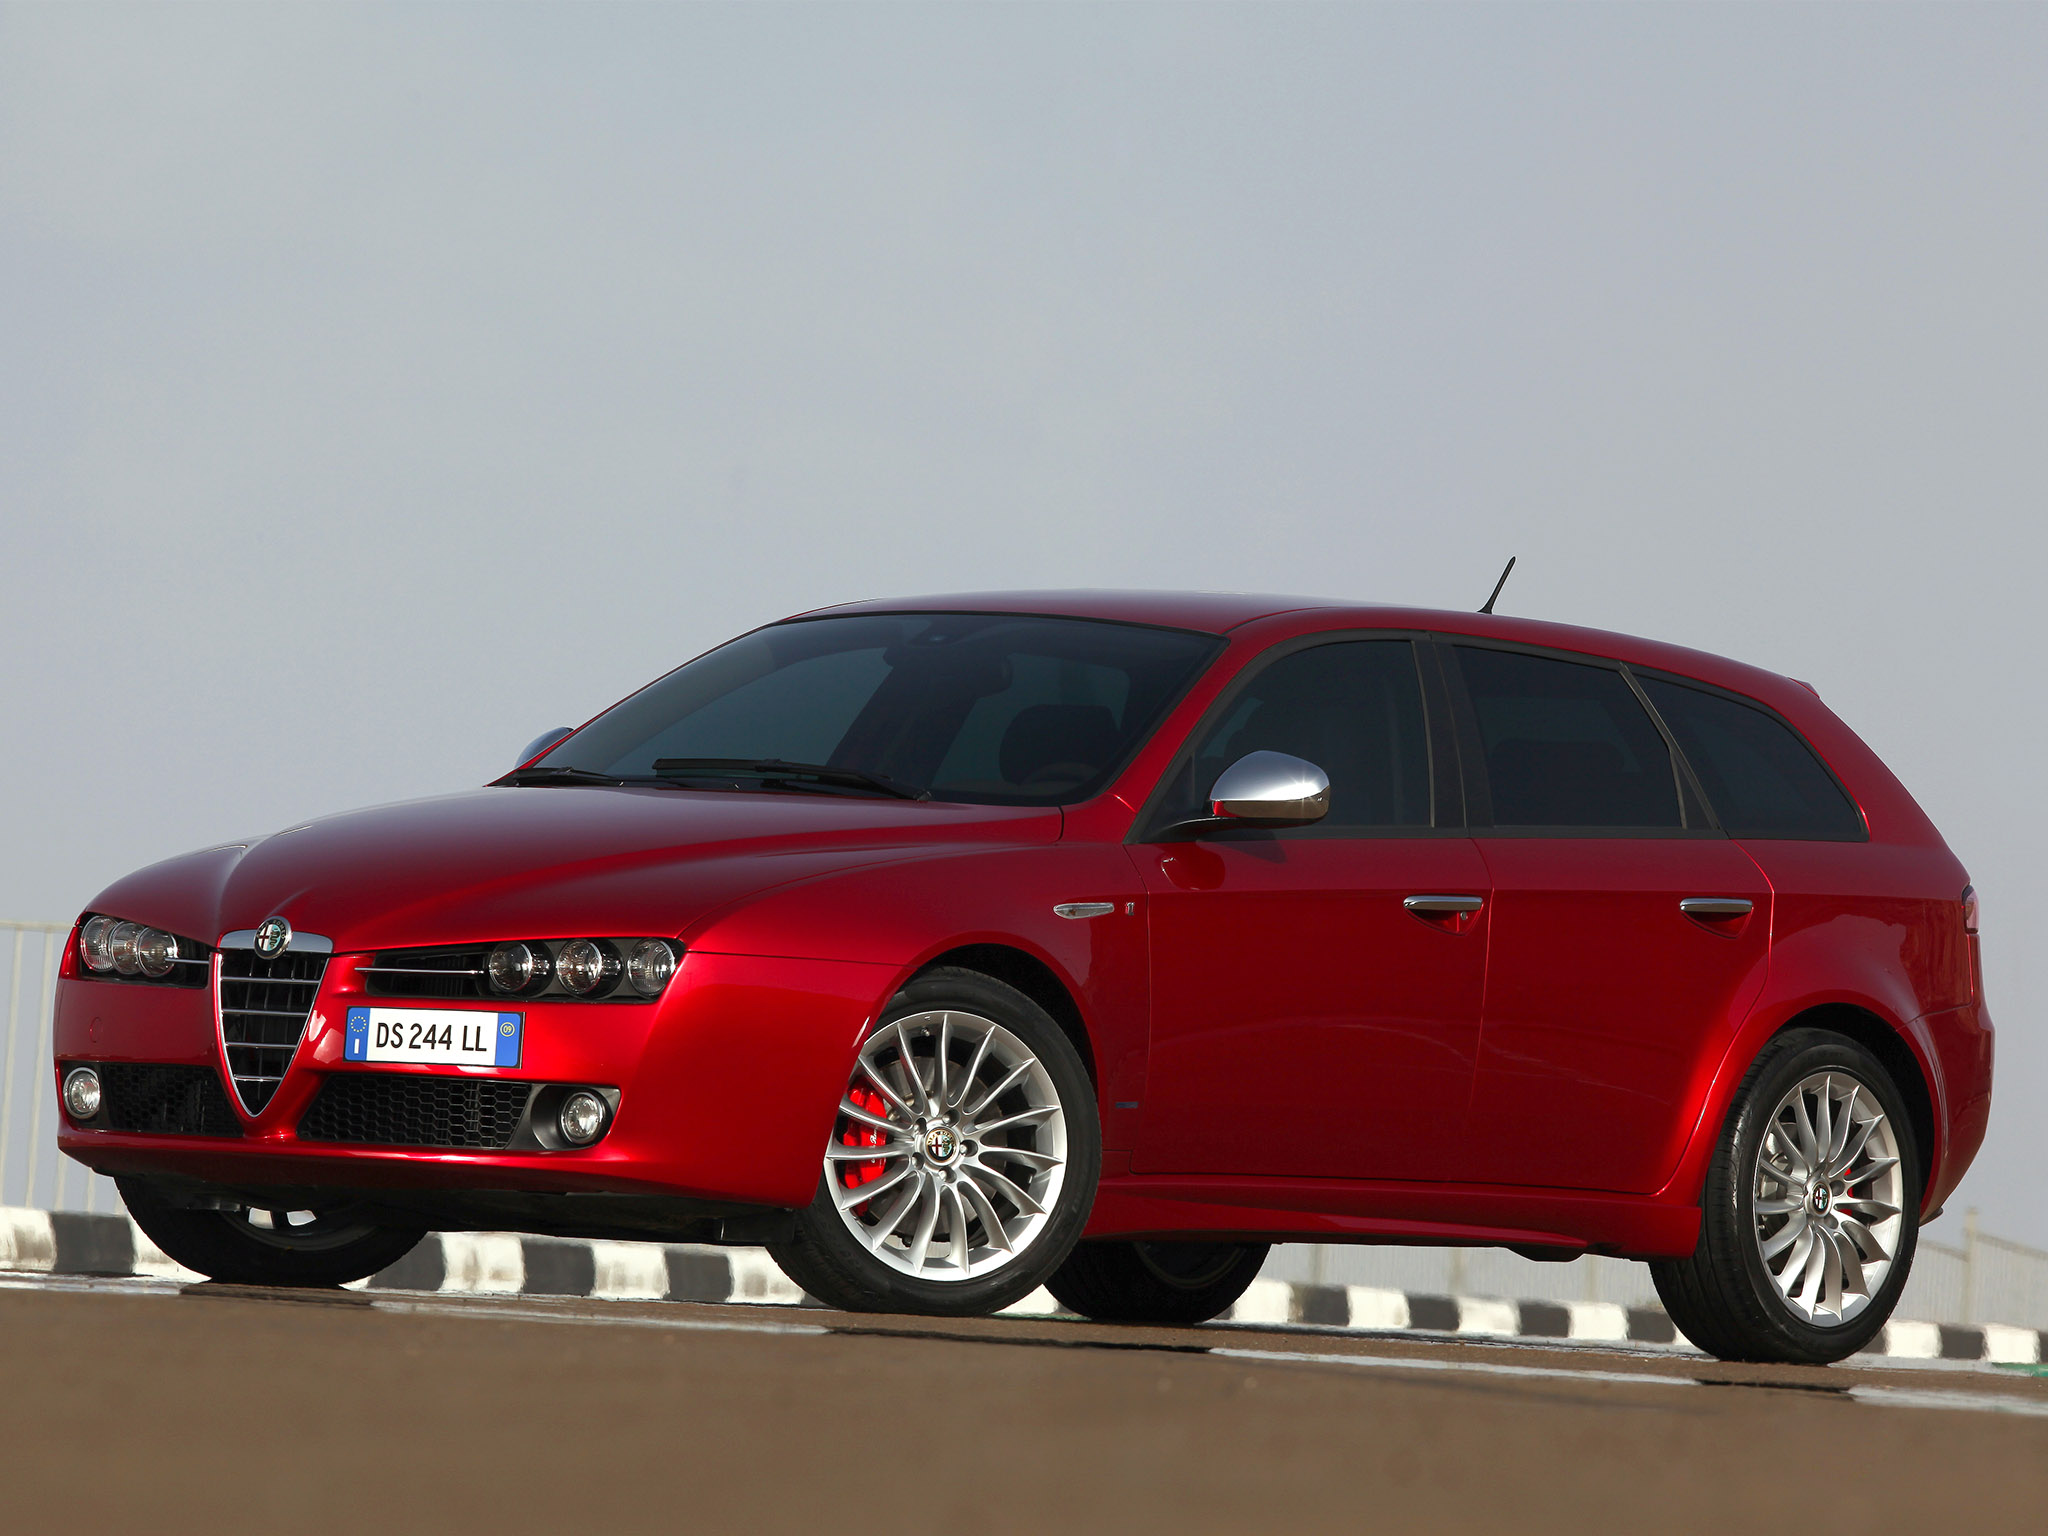 alfa romeo 159 sw 2009 alfa romeo 159 sw 2009 photo 24 car in pictures car photo gallery. Black Bedroom Furniture Sets. Home Design Ideas